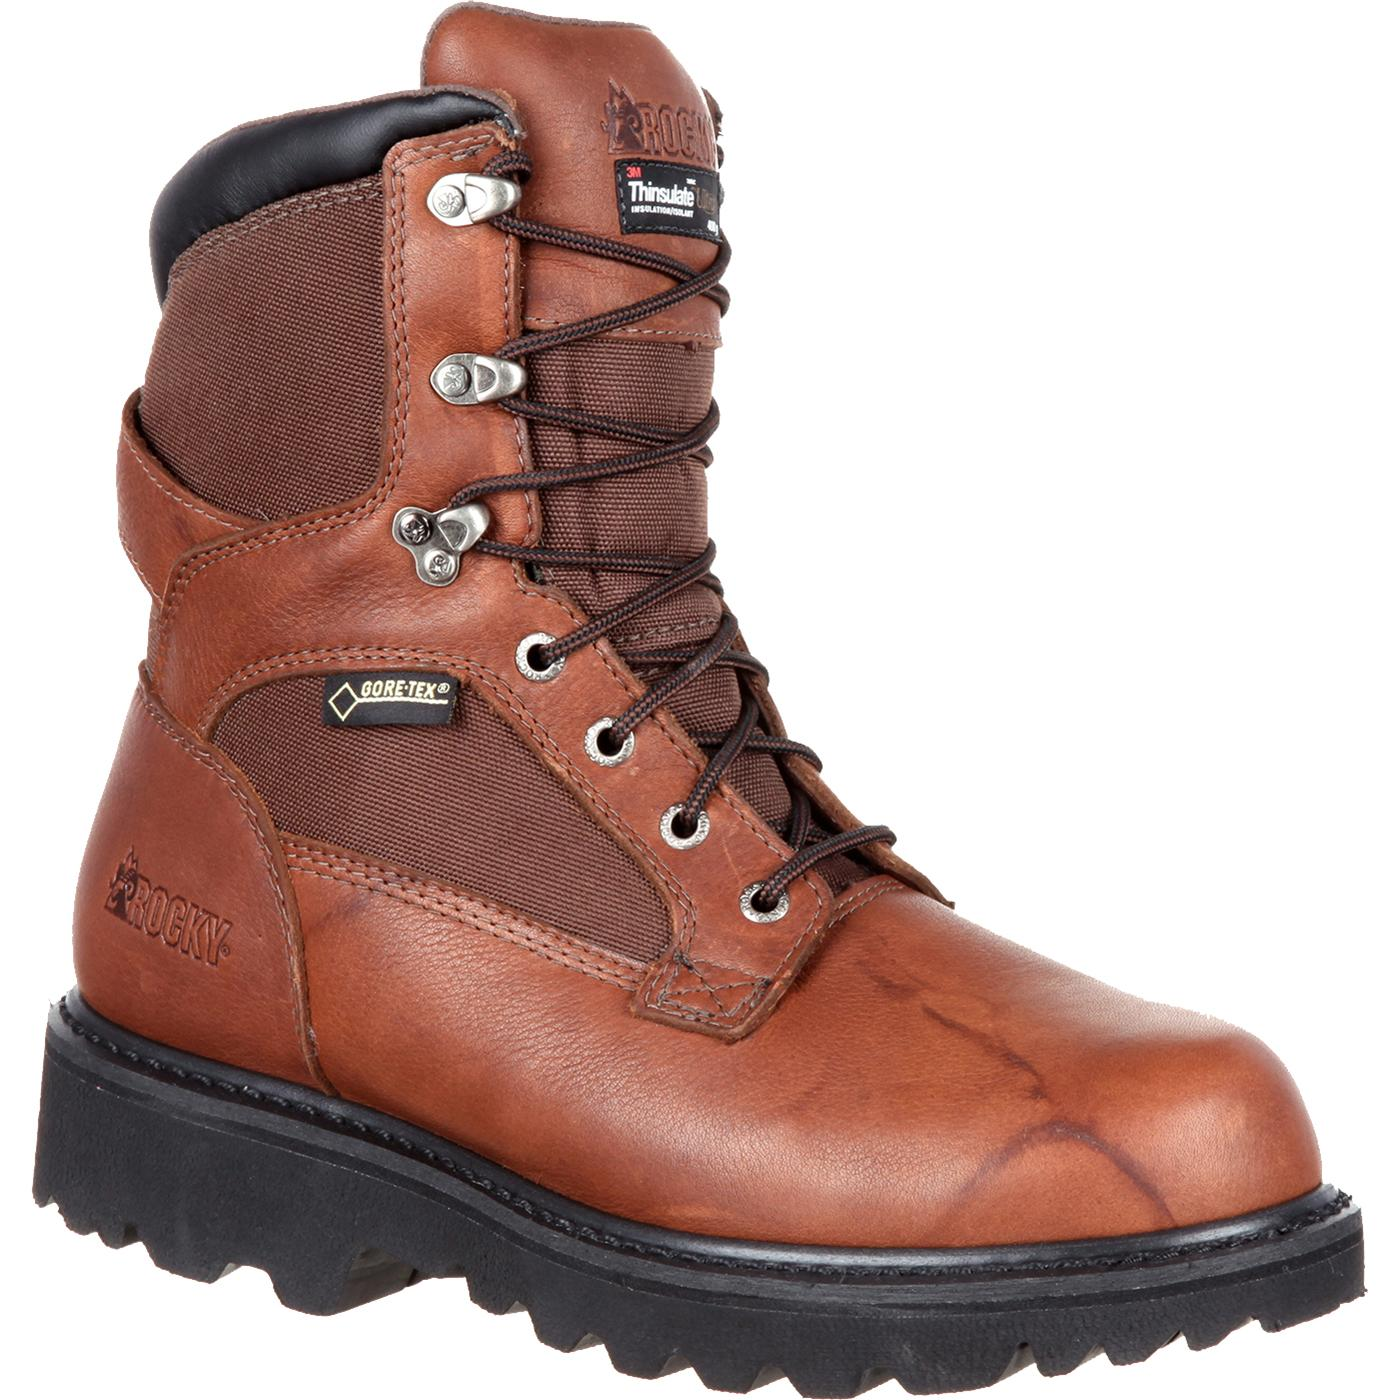 Rocky Ranger Gore Tex 174 Insulated Outdoor Boots Rks0304